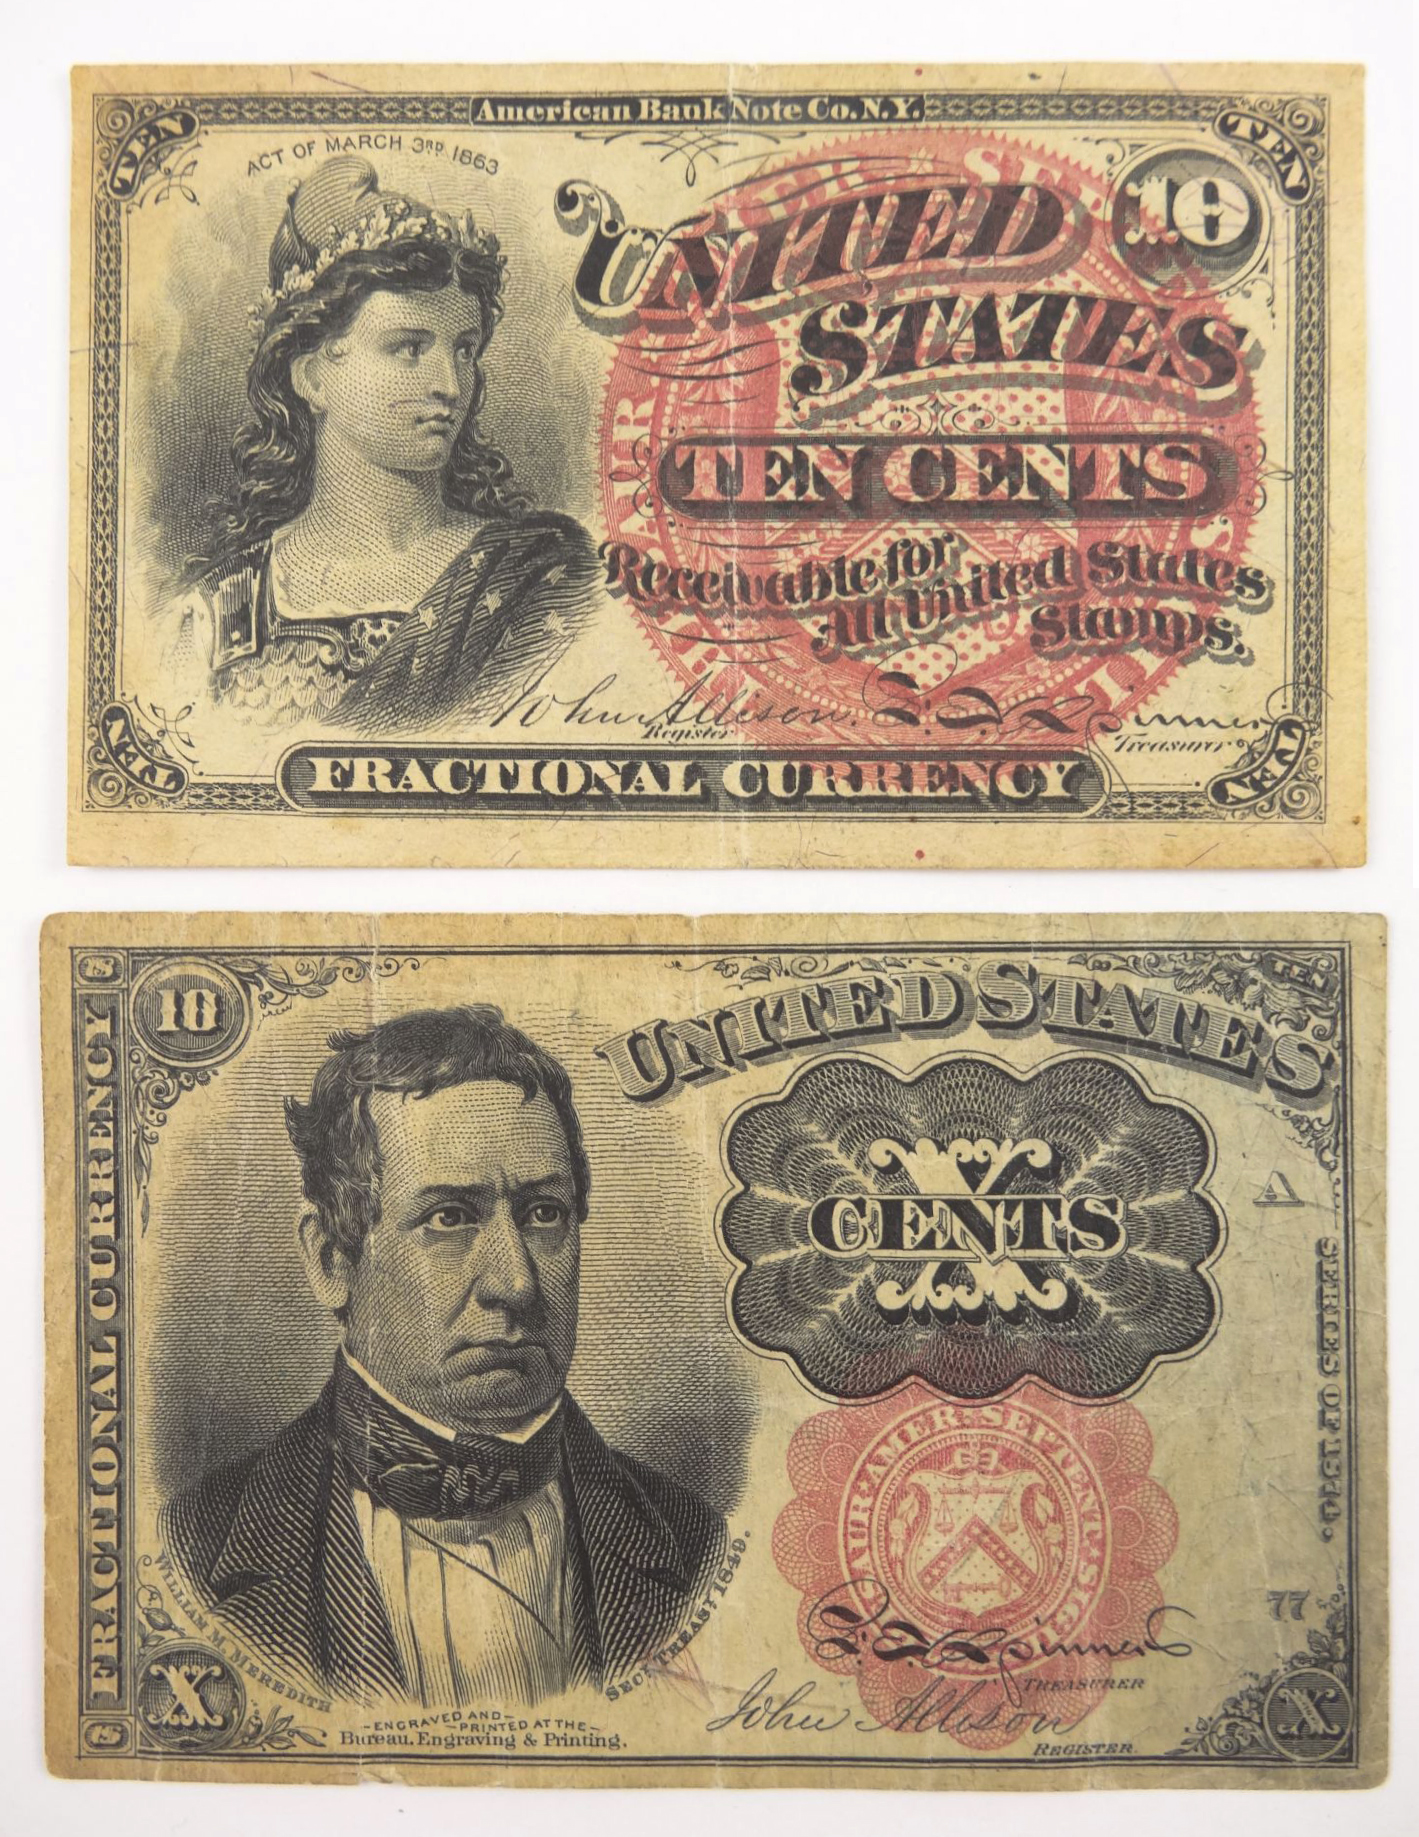 United States of America Fractional Currency